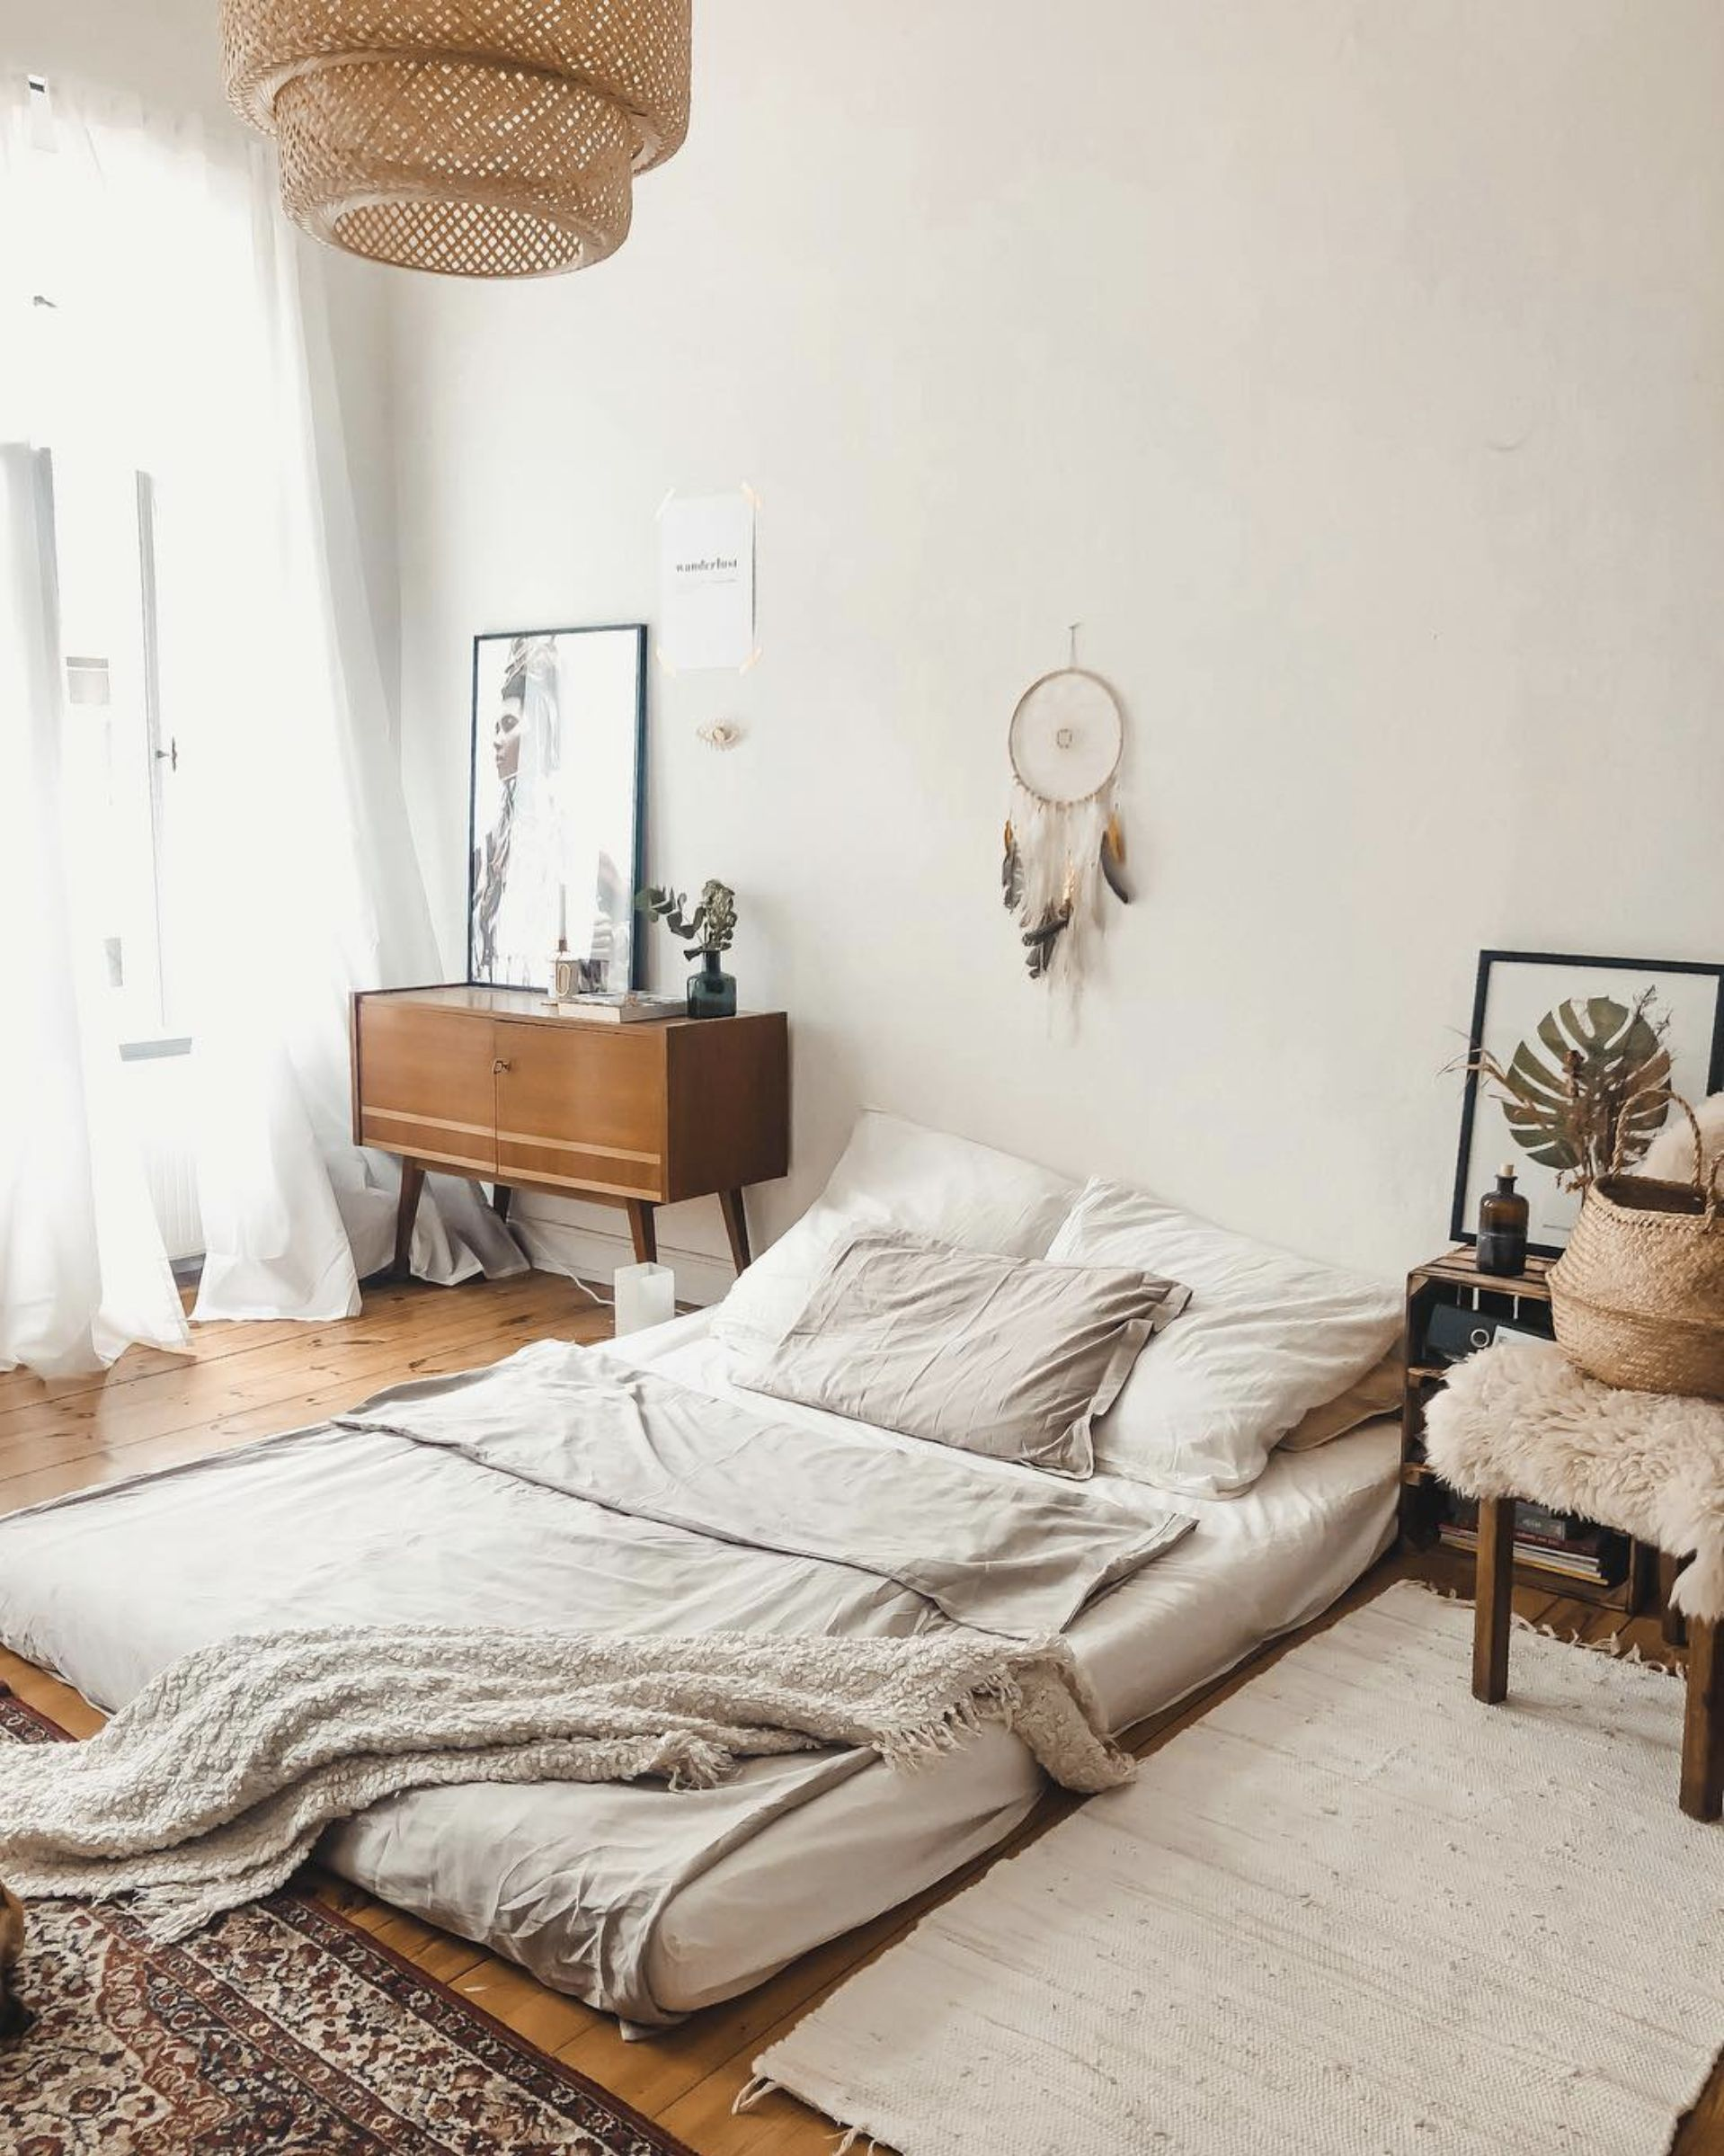 Relaxing Bed On Floor Home Decor Bedroom Diy Apartment Decor